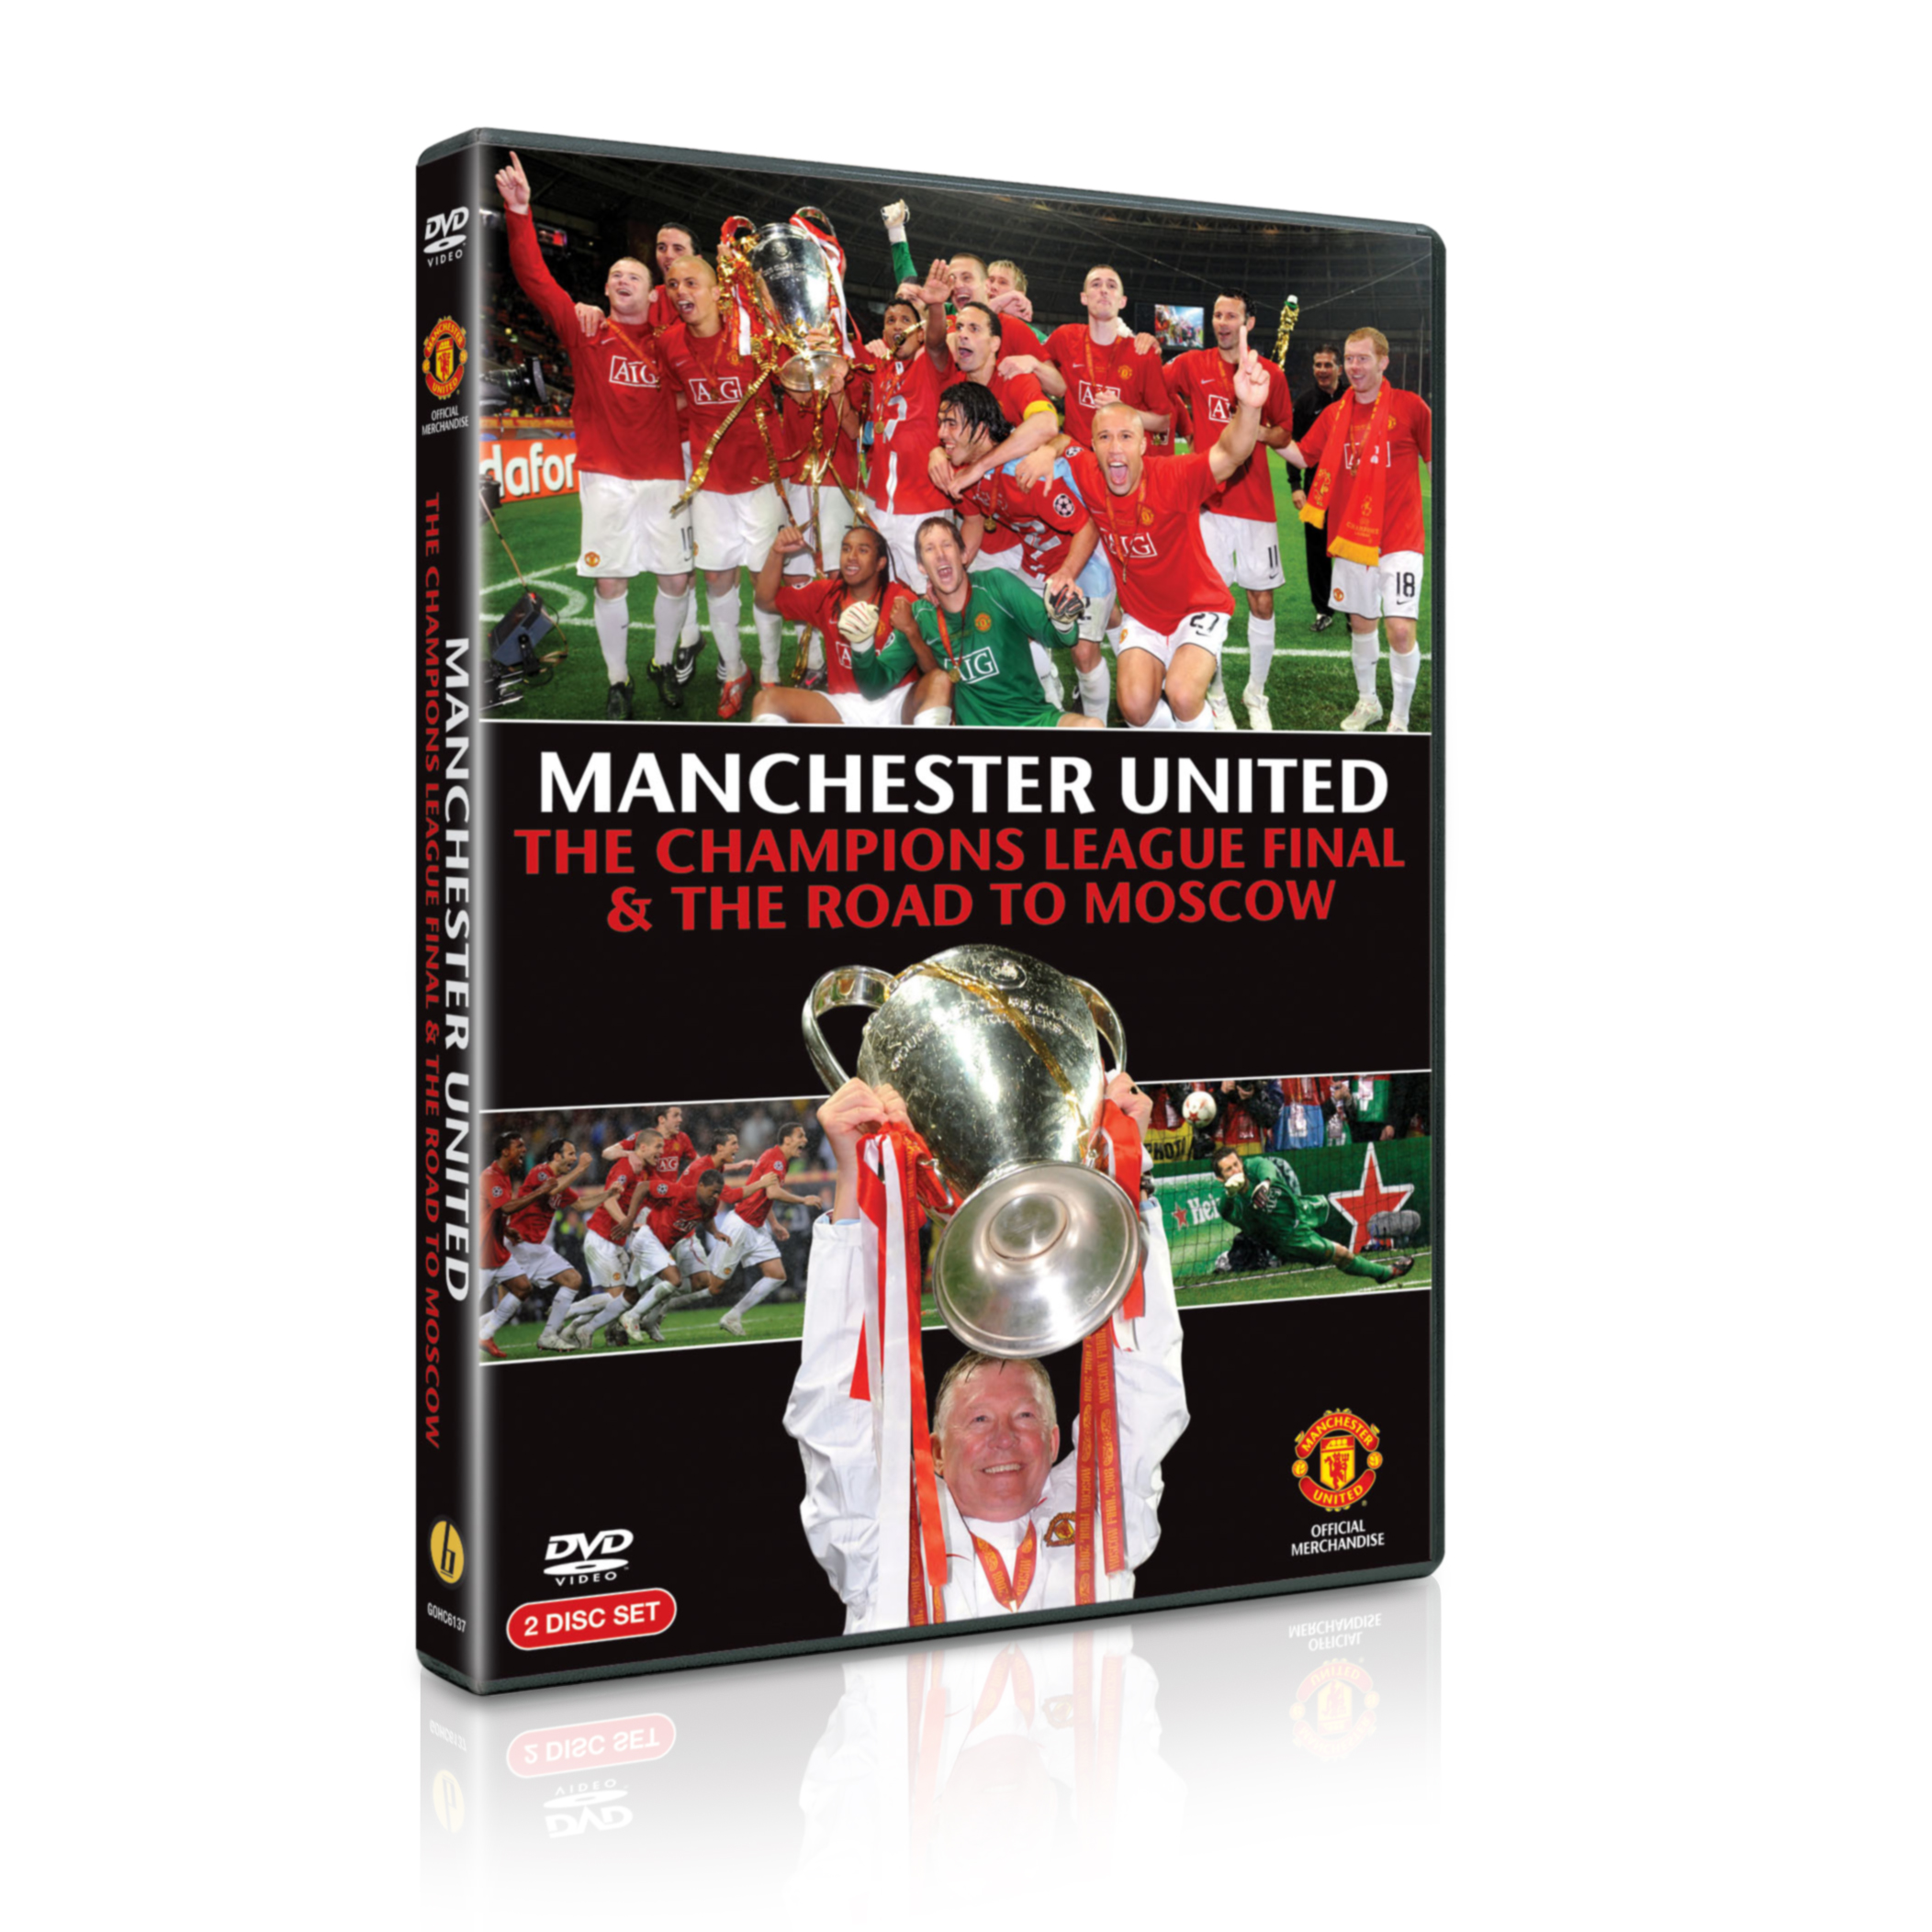 Manchester United 2008 Champions League Final and Road to Moscow - DVD - PAL